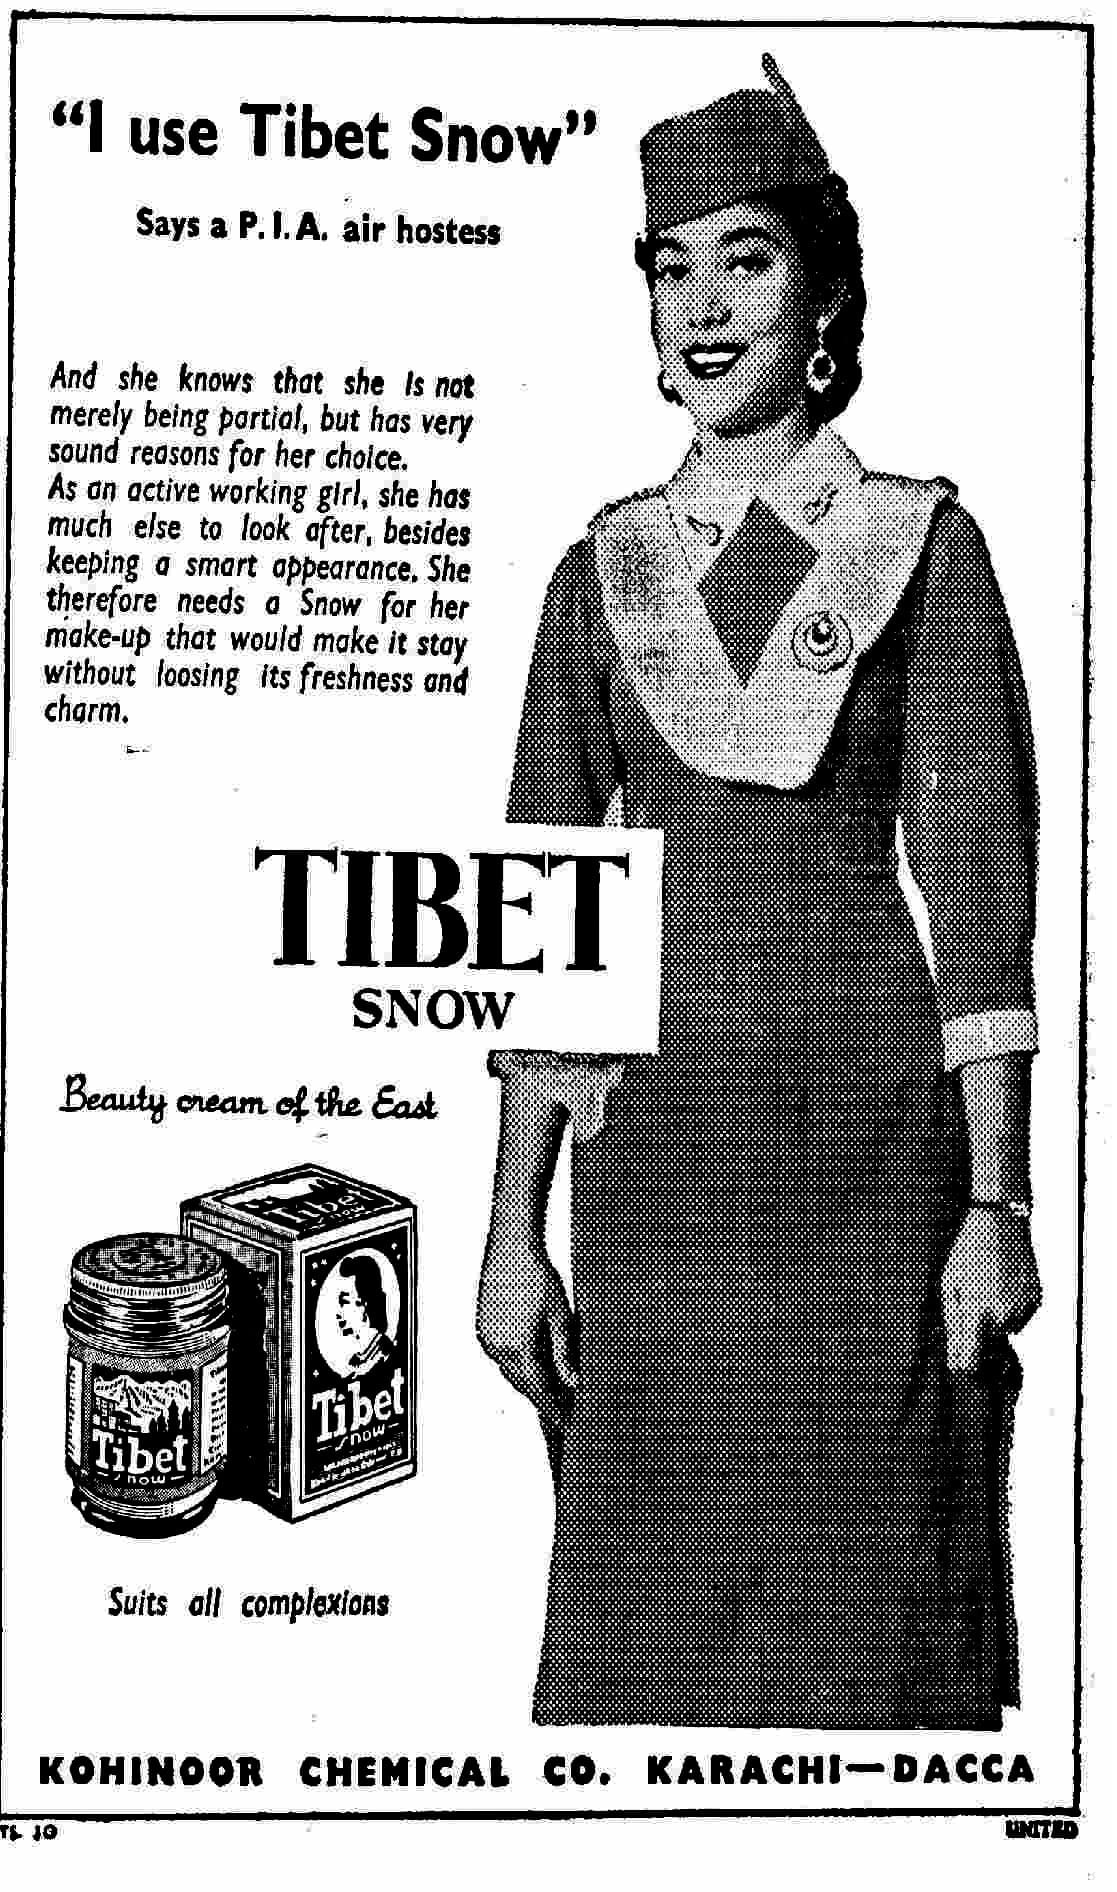 Tibet's ad from 1956